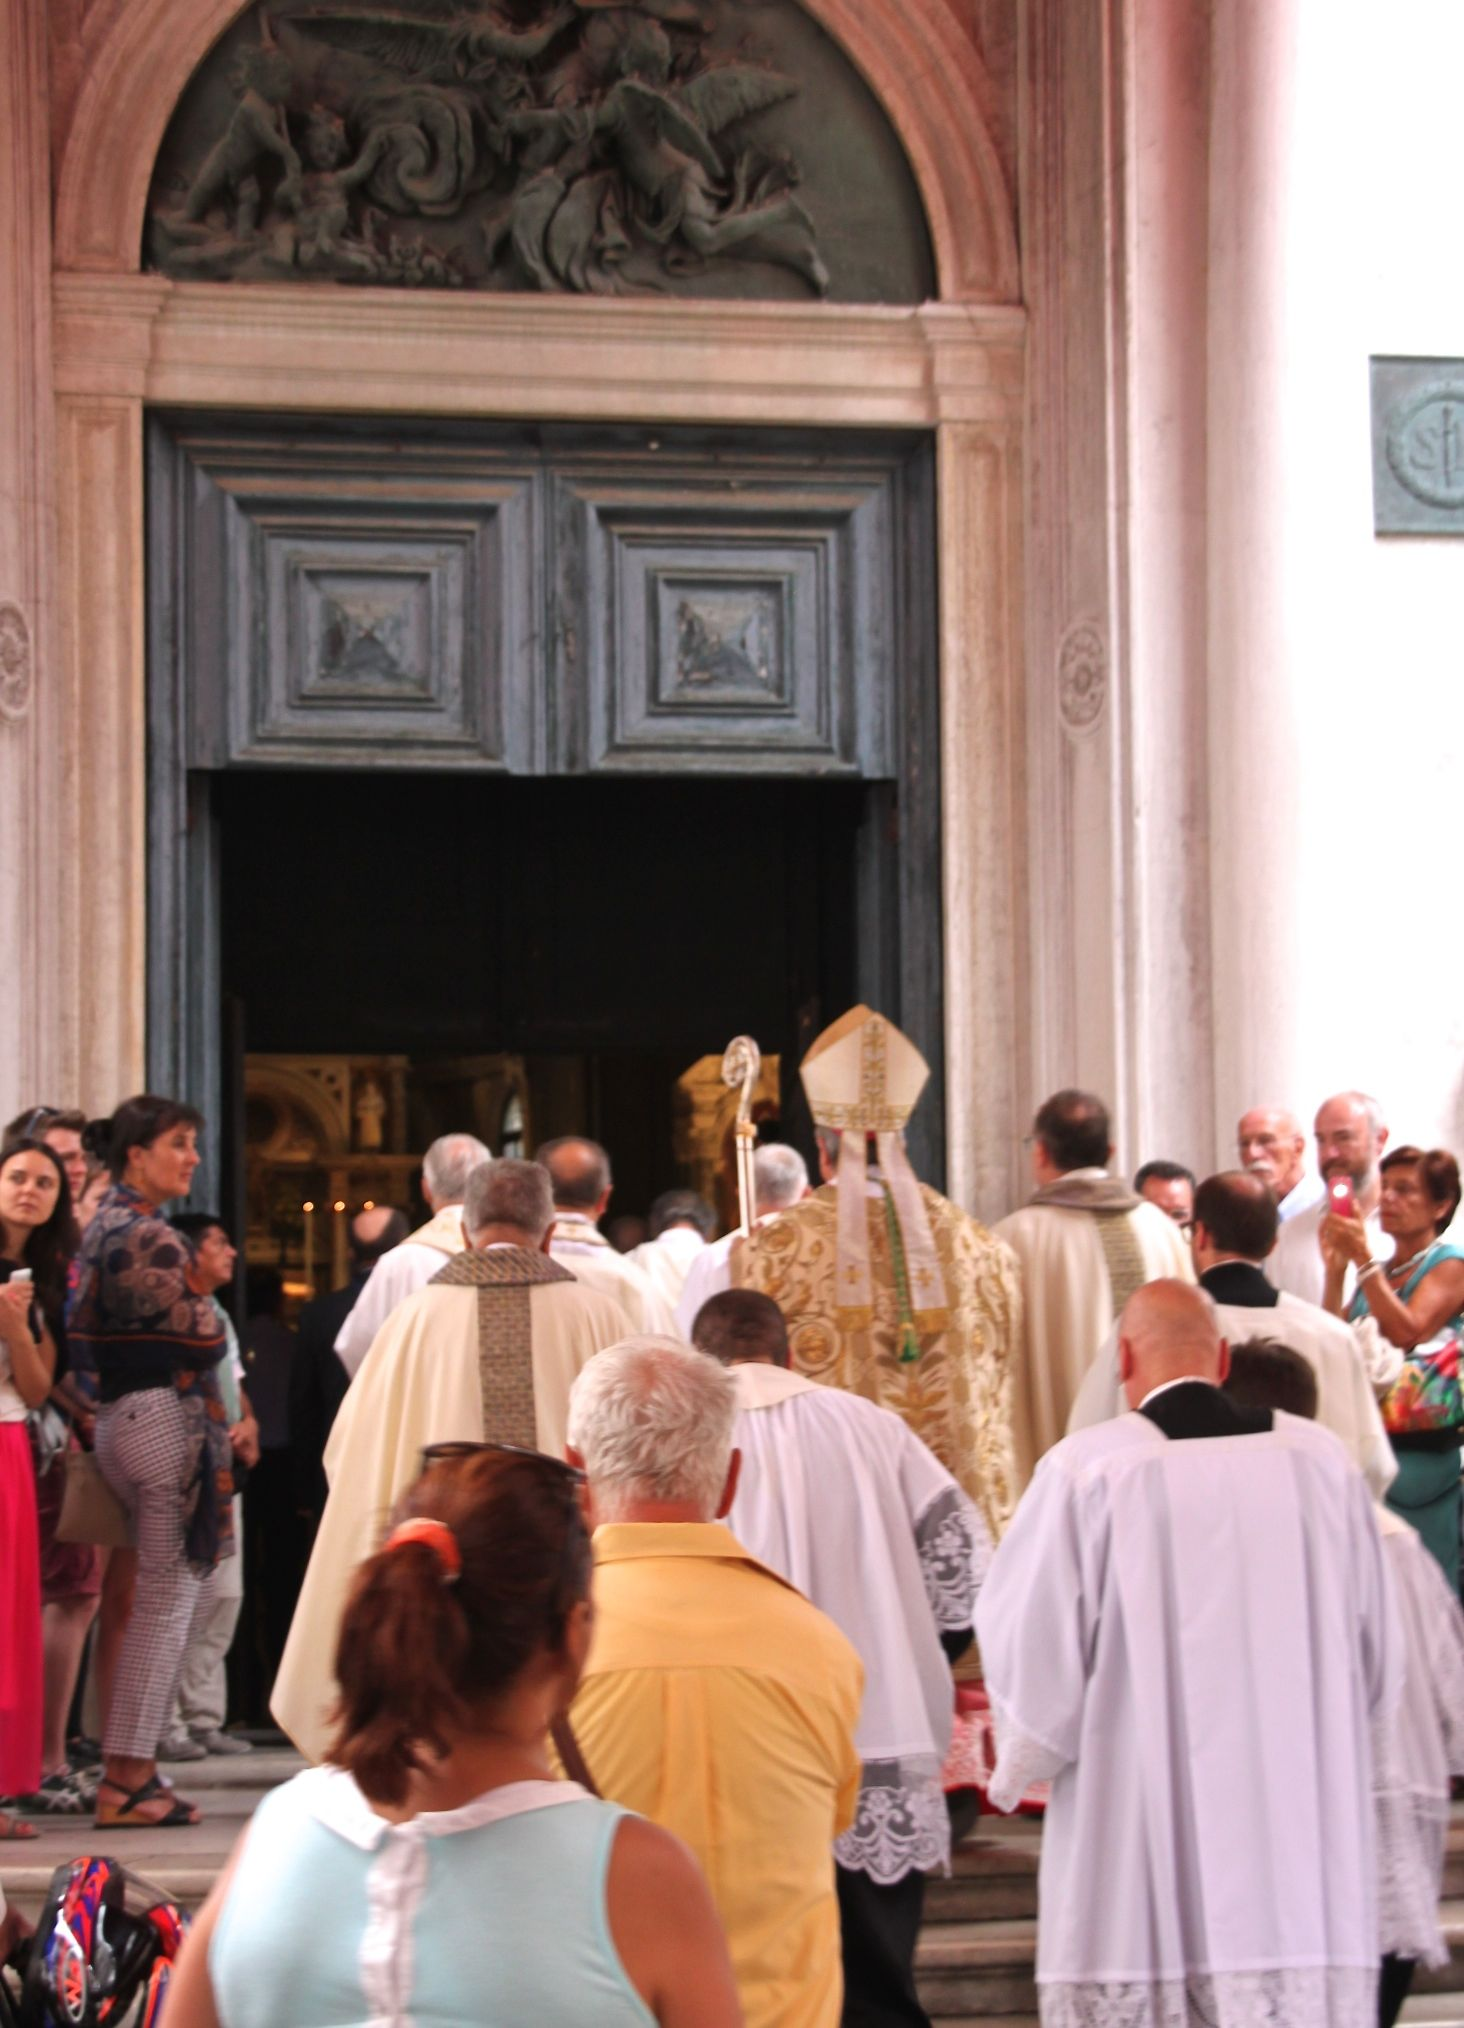 The procession for the Festa of San Rocco enters the church to begin the 6pm mass, August 16th